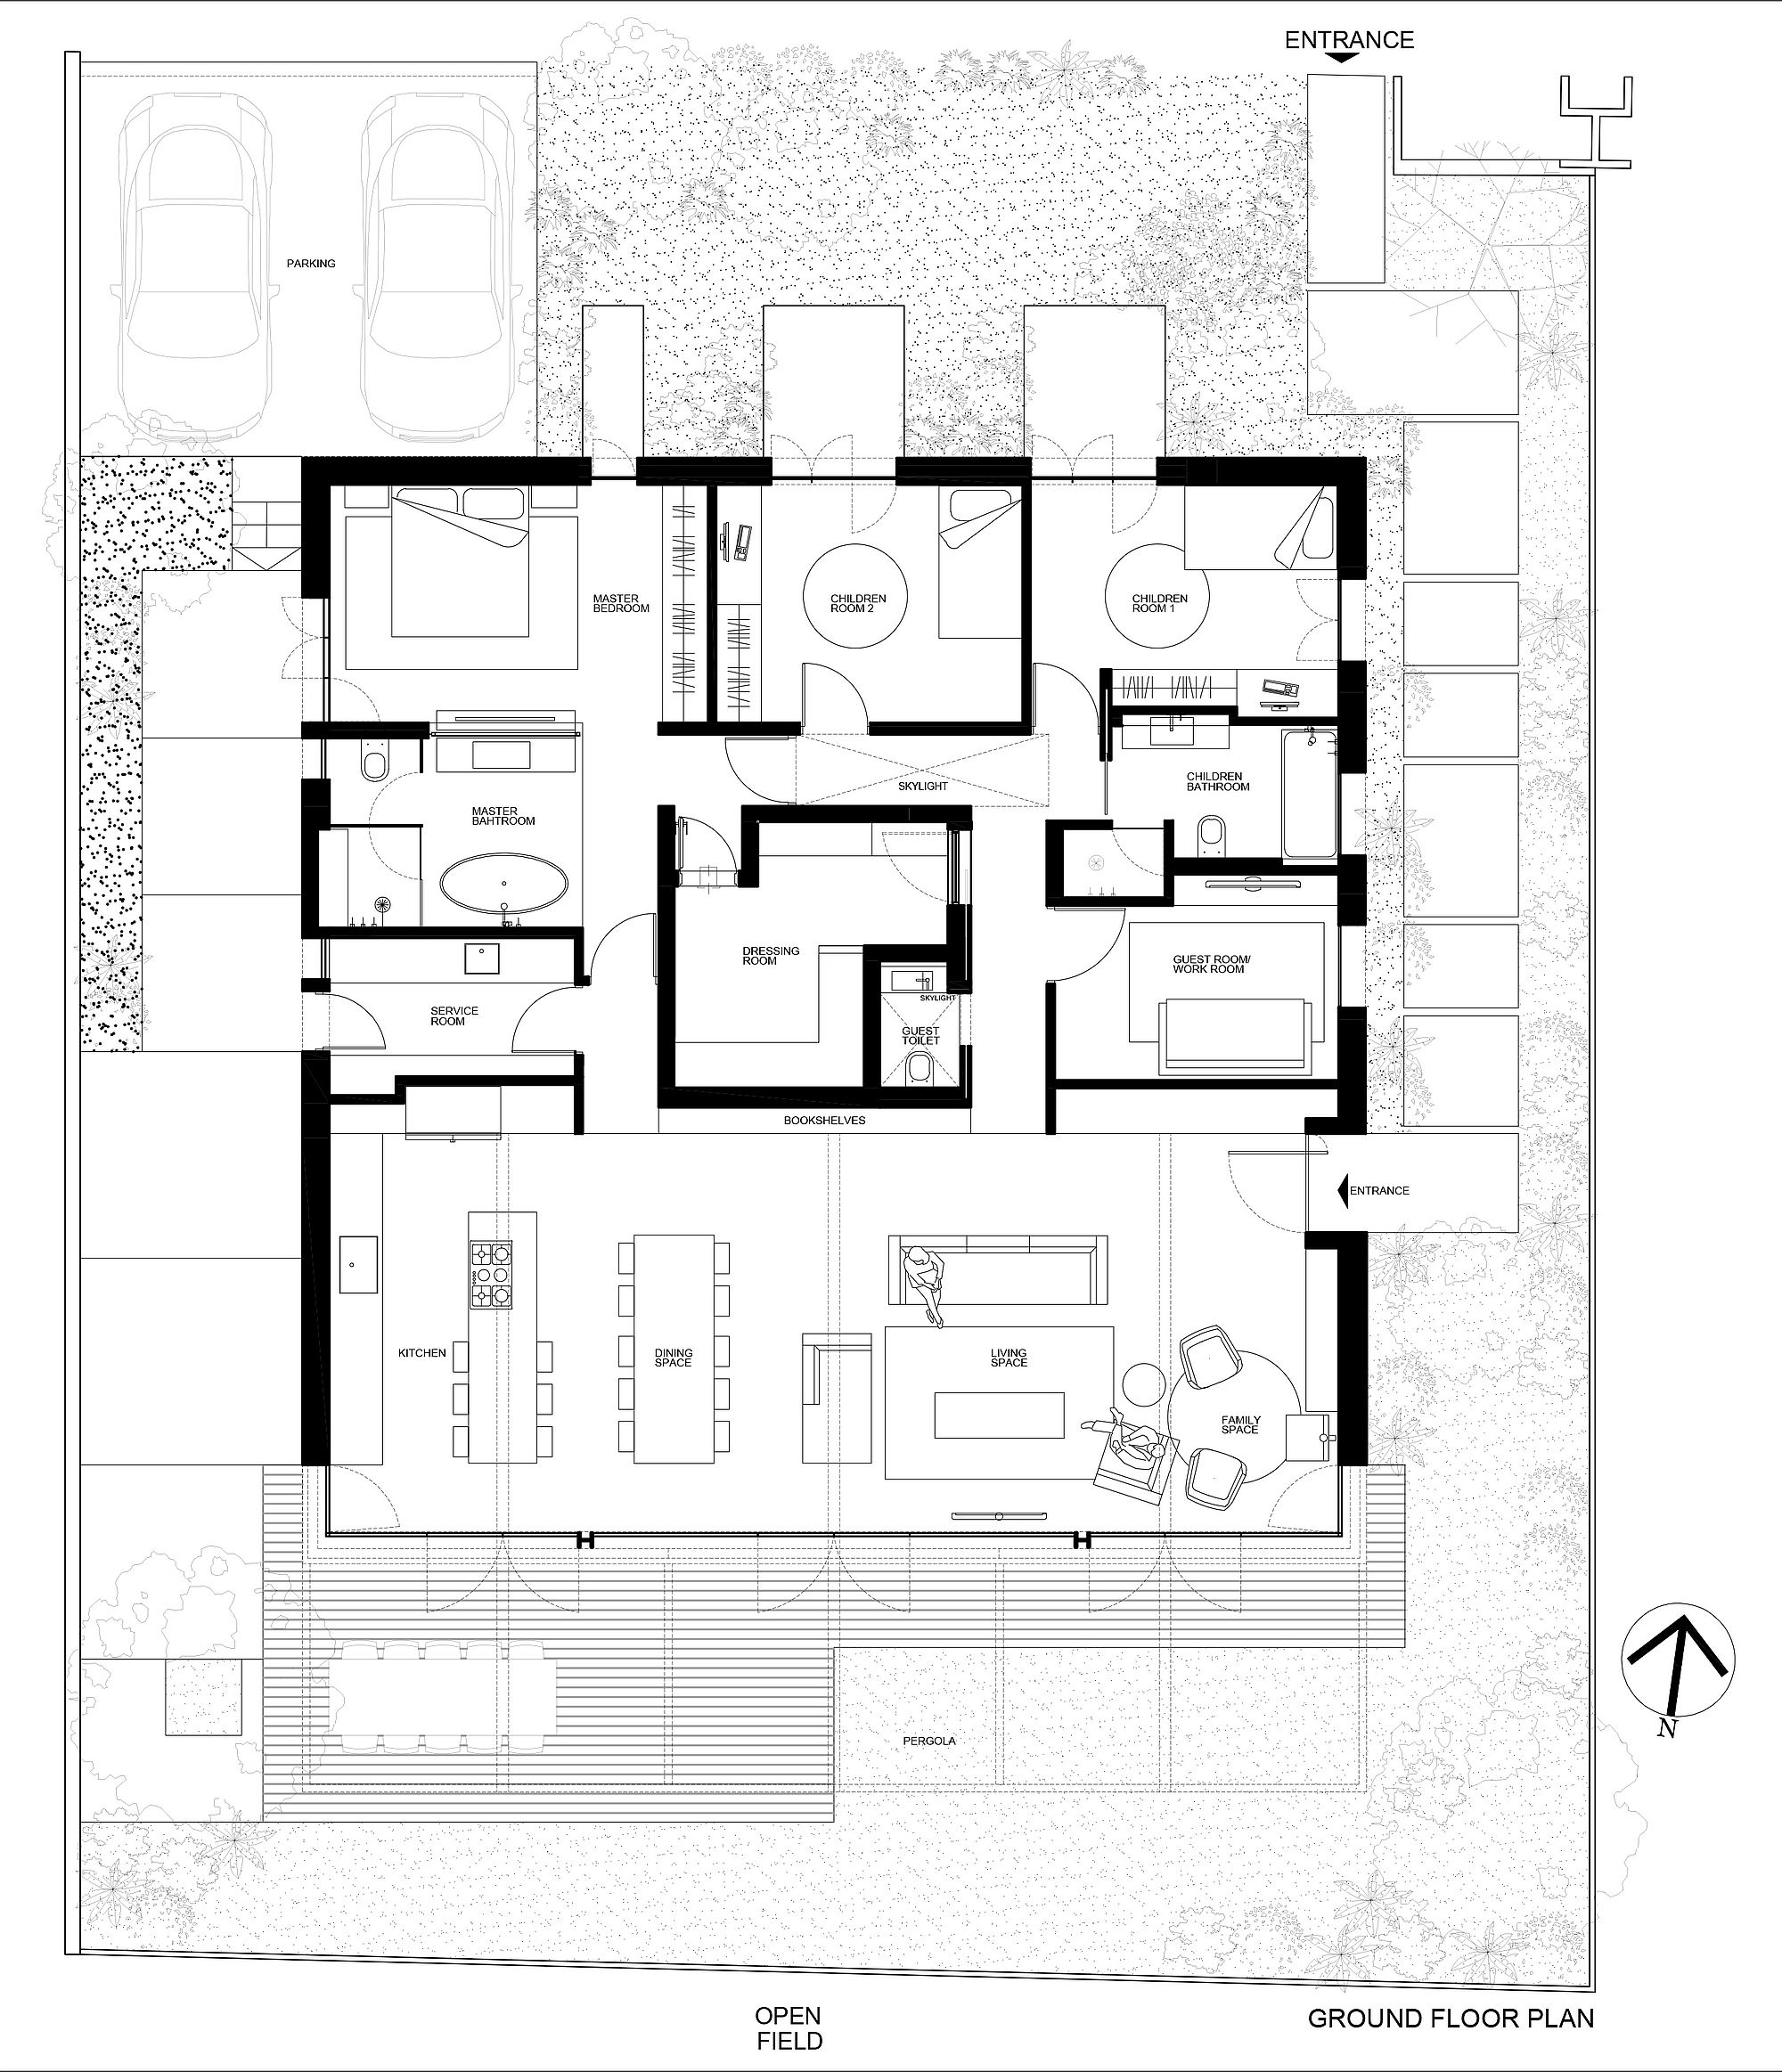 Floor plan of Bare House by the Fields